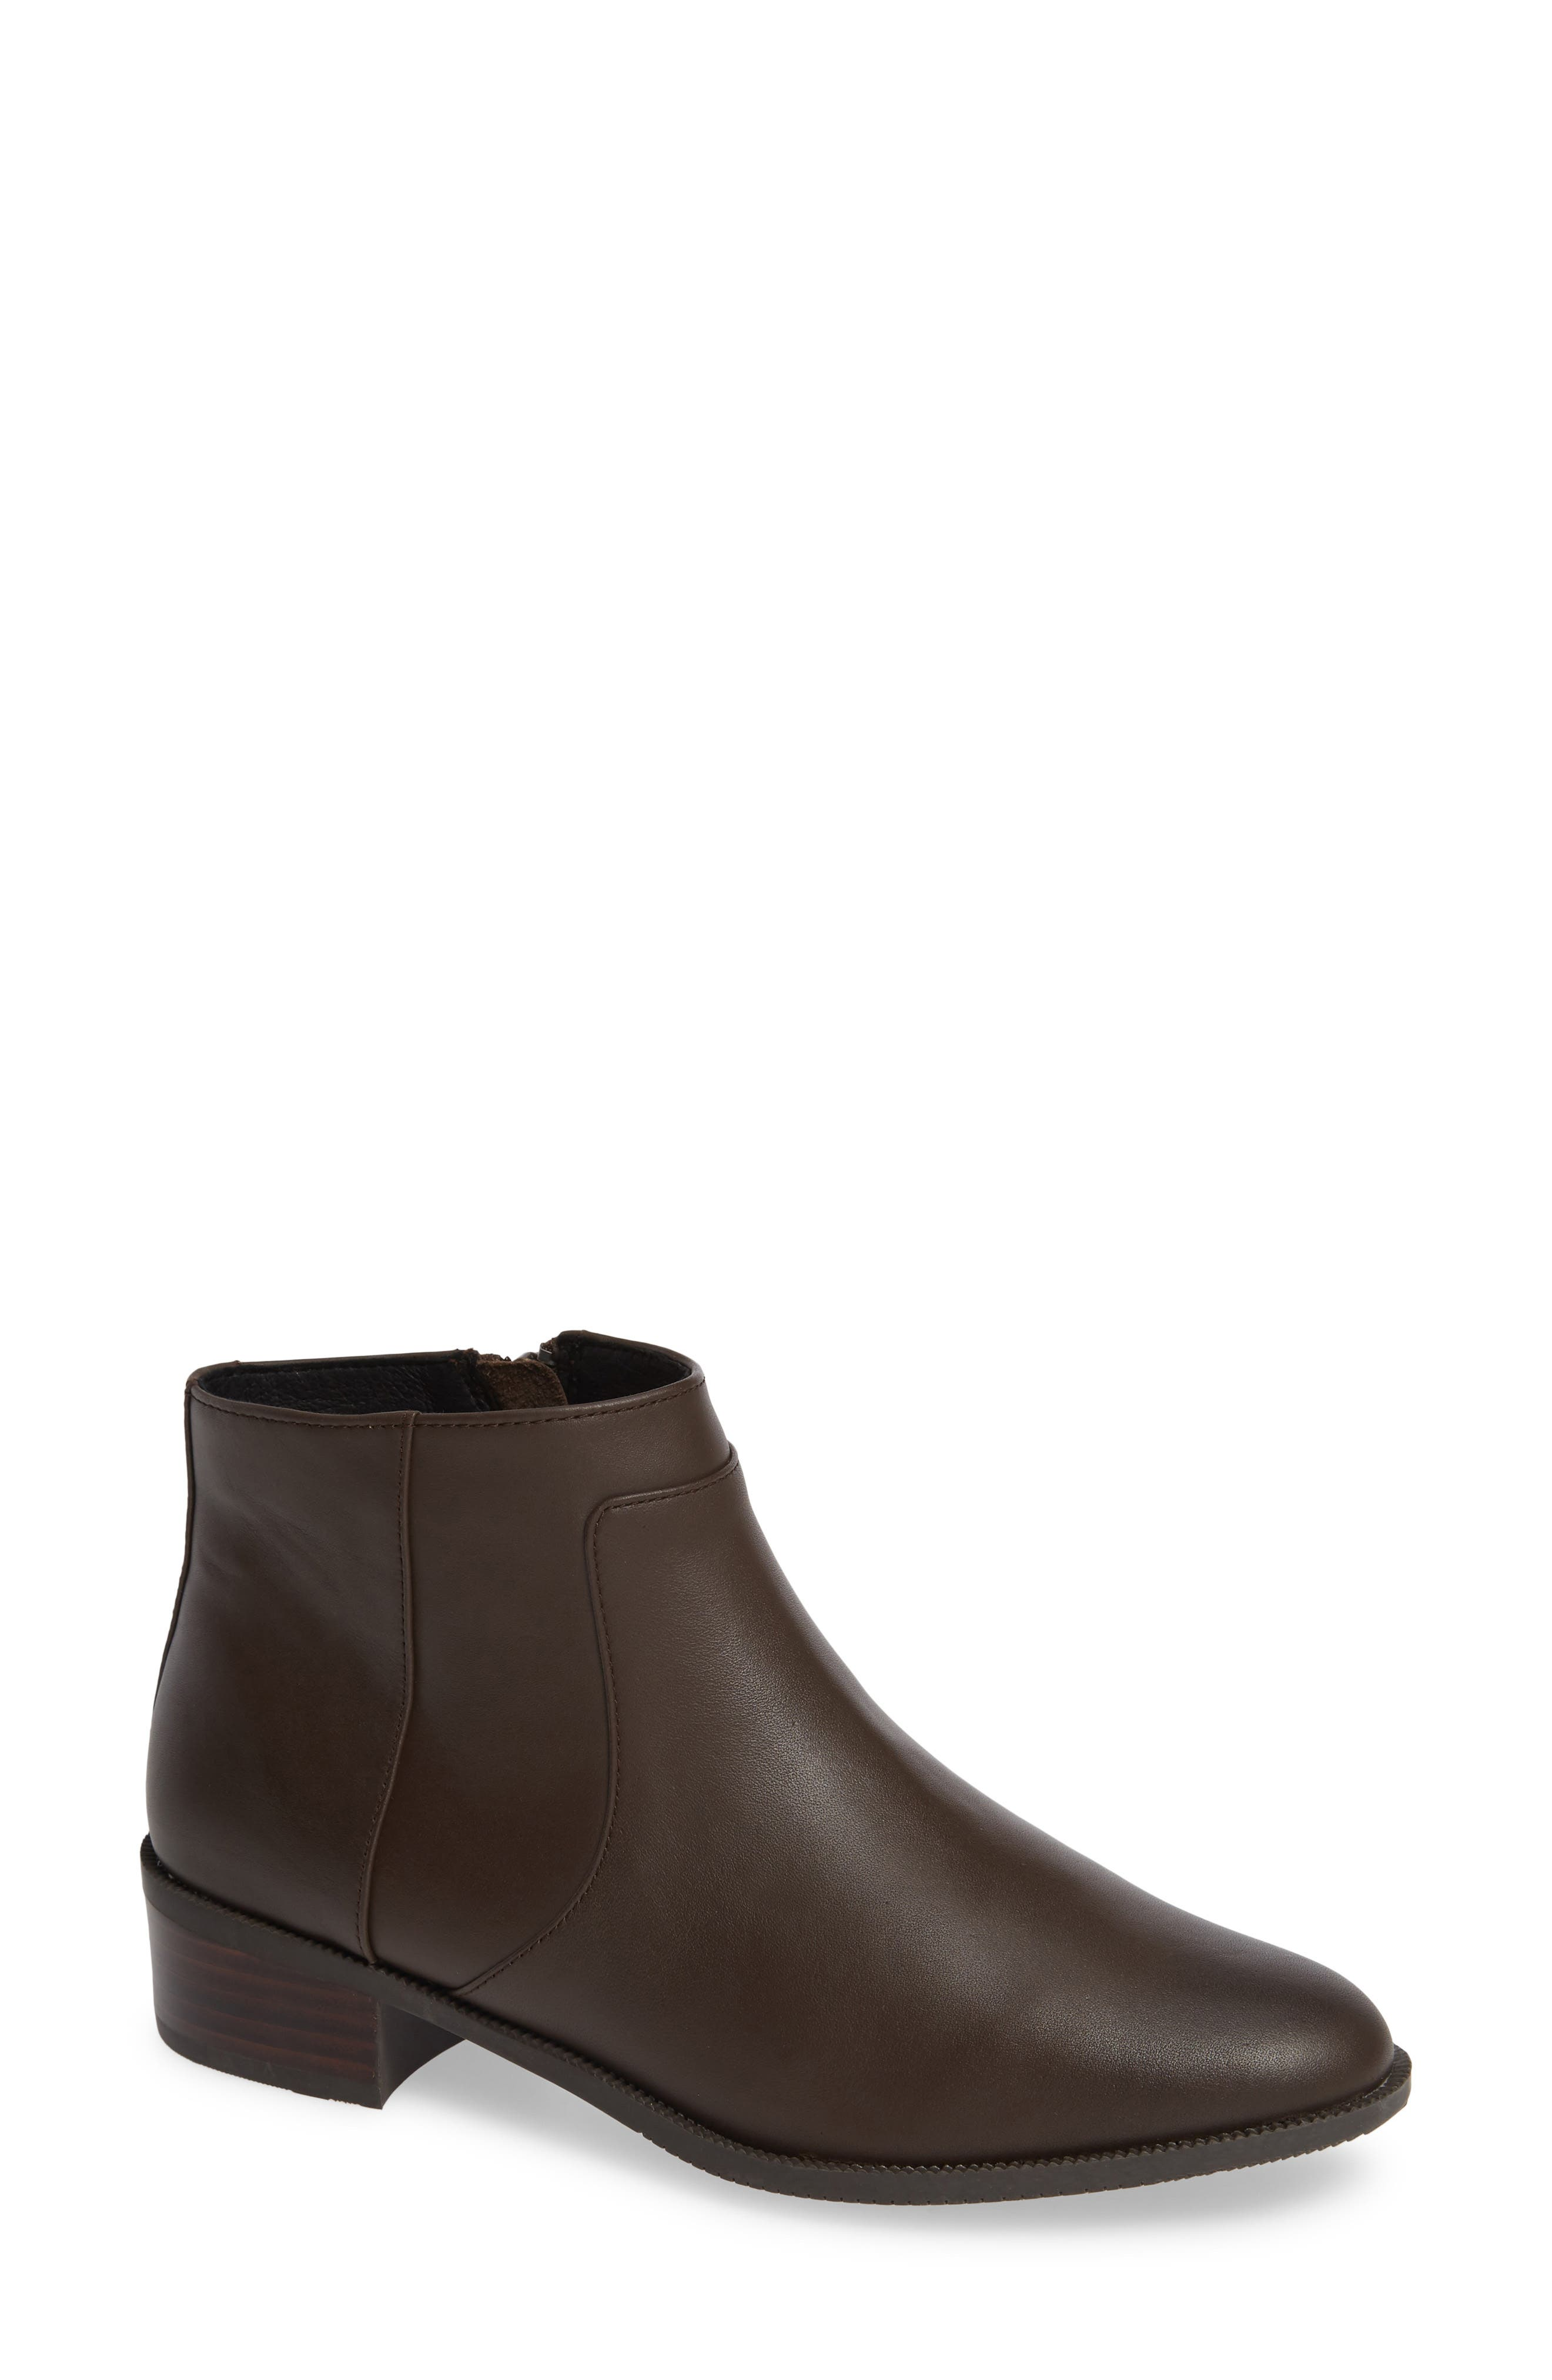 Benette Water Resistant Bootie,                             Main thumbnail 1, color,                             CHOCOLATE LEATHER